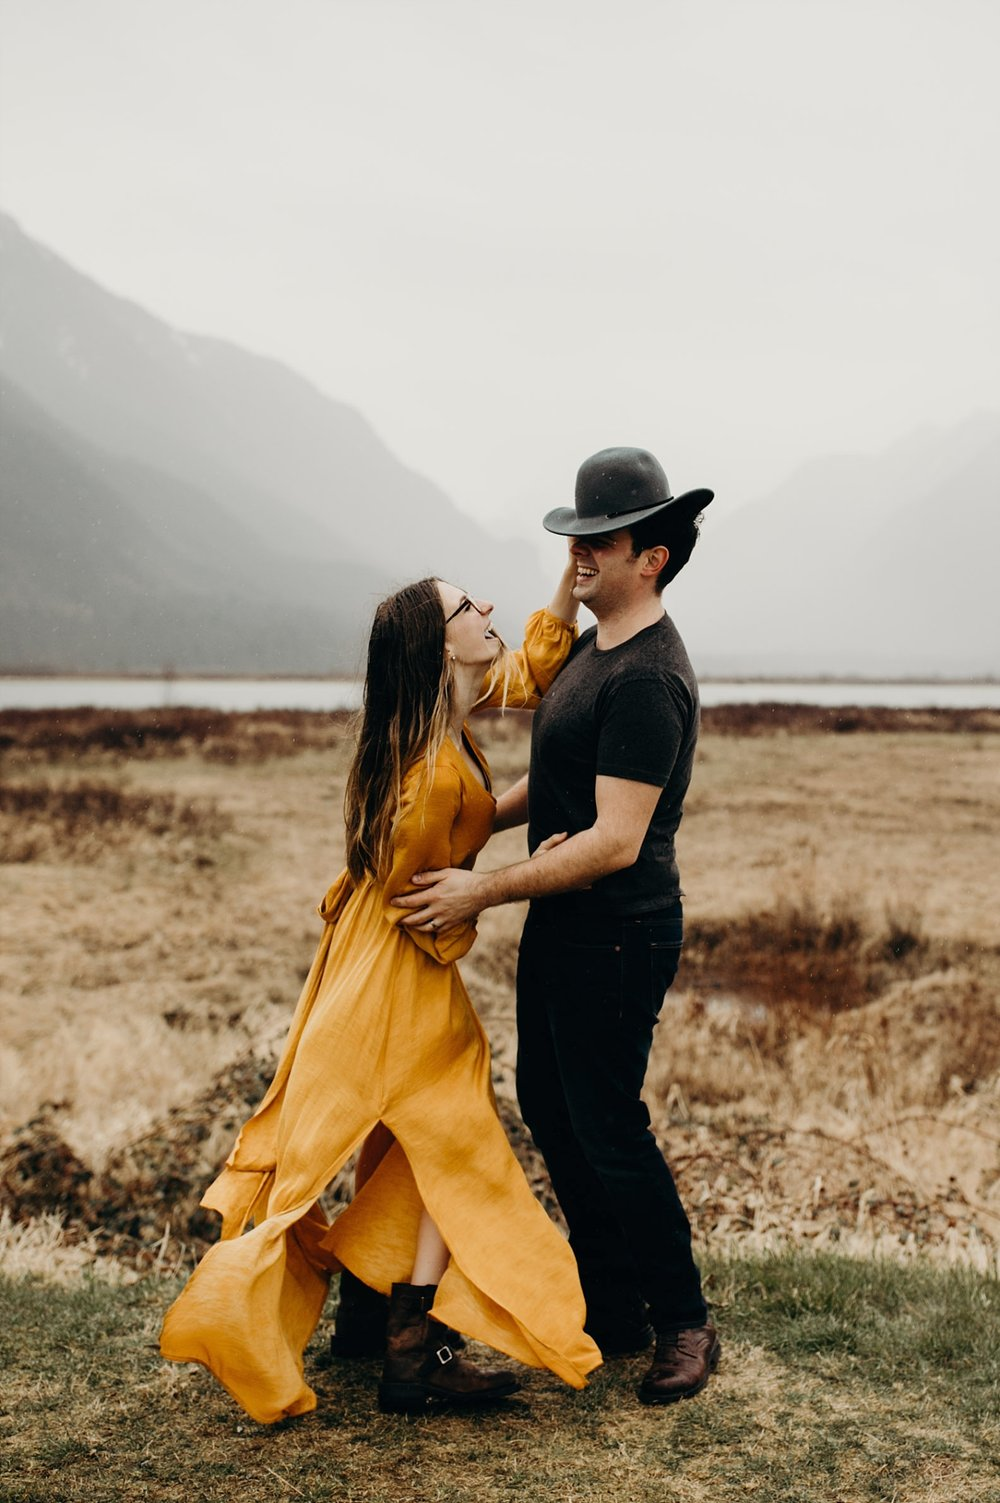 The McLachlans - Vancouver Wedding Photographers - Pitt Lake Engagements - Dan and Alleigra_0011.jpg